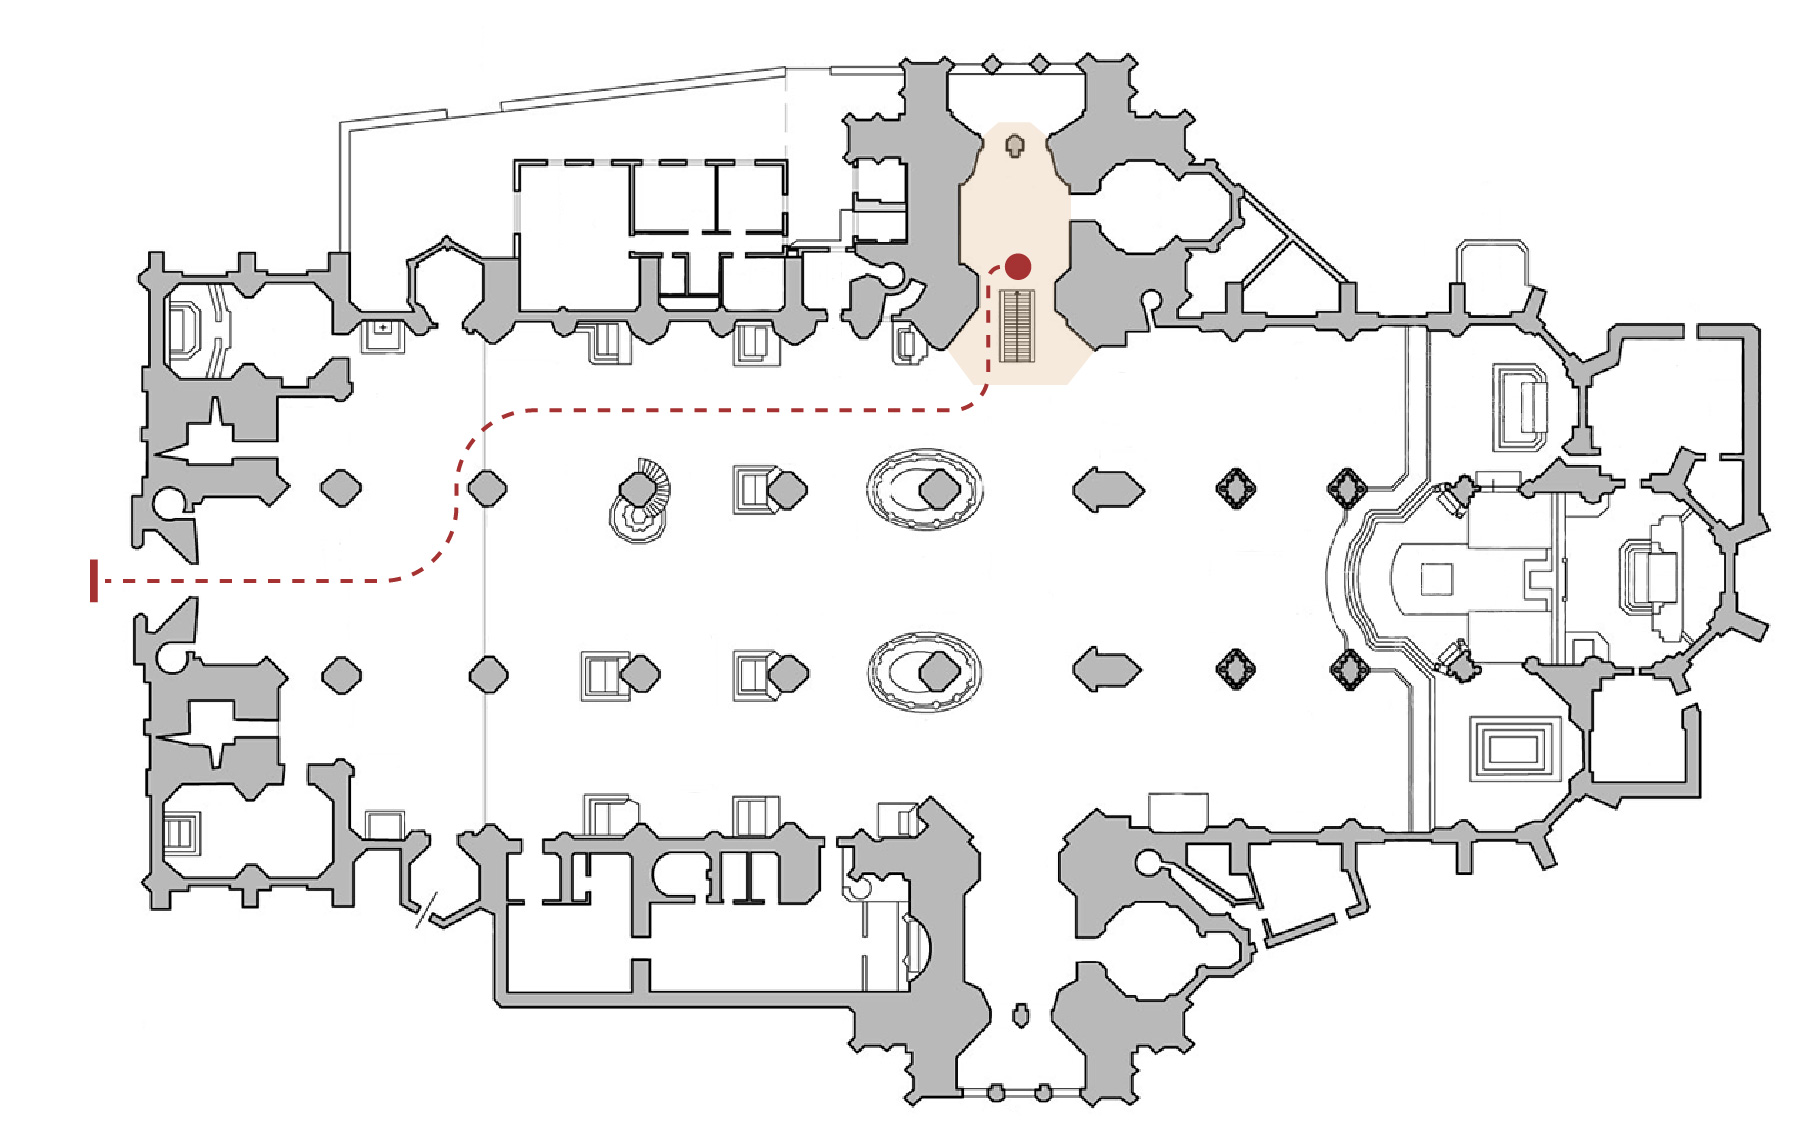 Floor plan of the catacombs